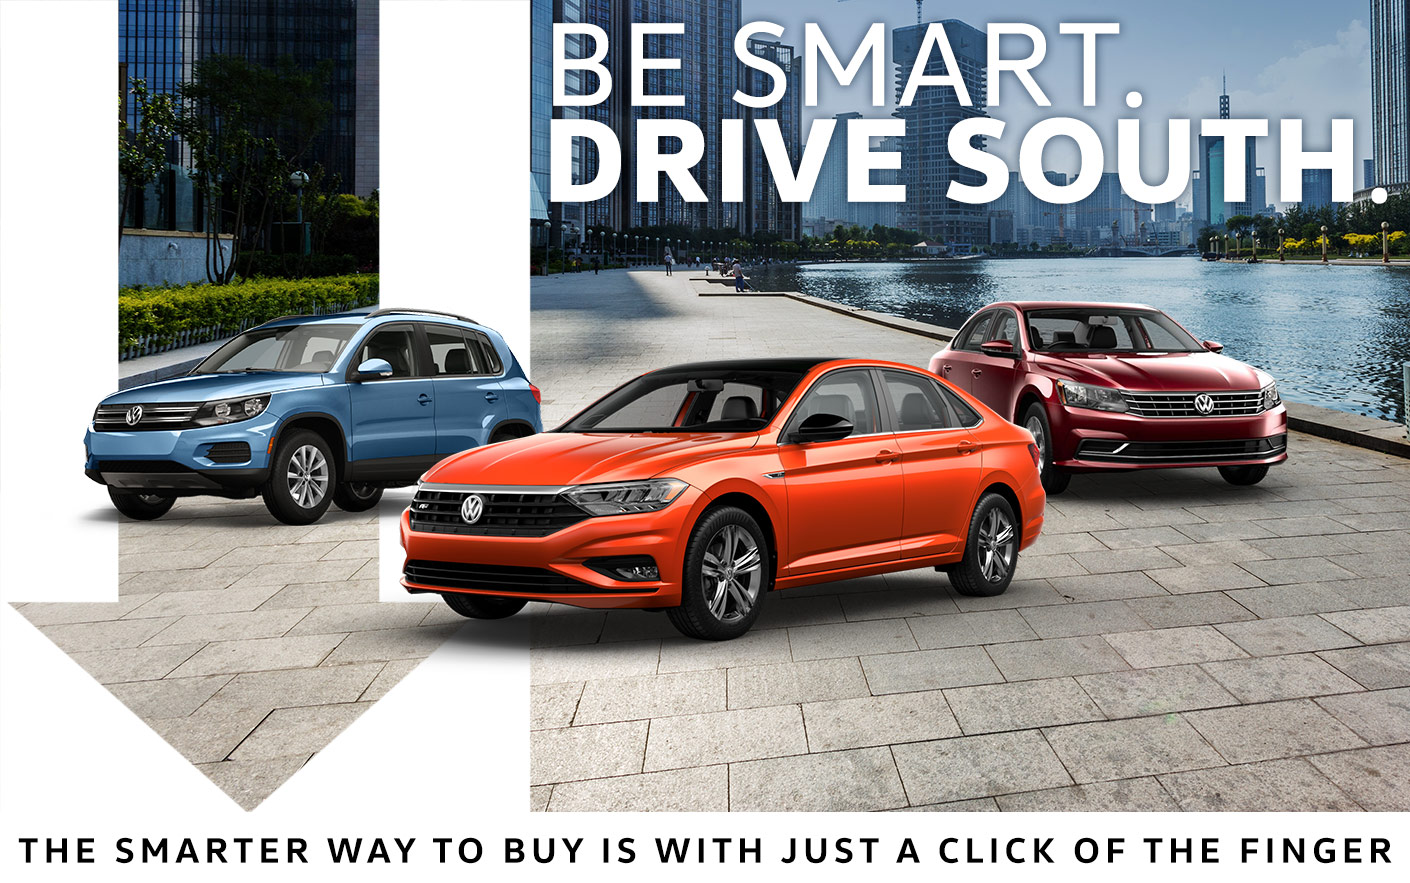 ONLINE CAR SHOPPING FINANCING TRADE DELIVERY MIAMI FORT LAUDERDALE PEMBROKE PINES SUNRISE FL